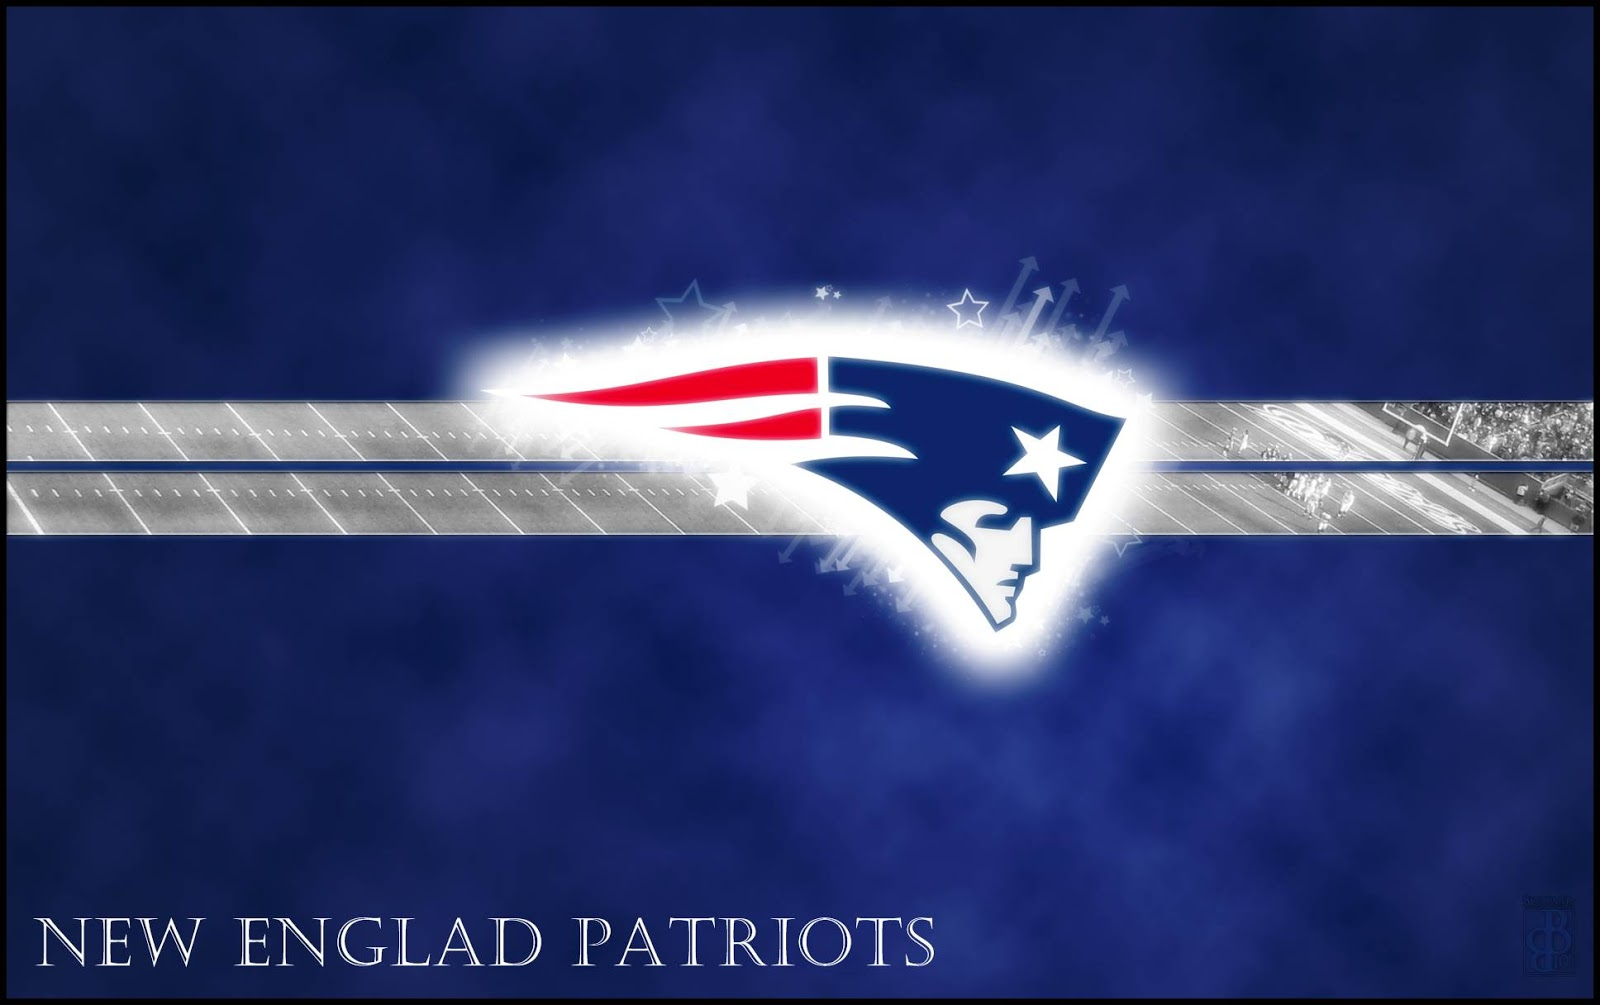 New England Patriots   NFL Wallpapers NFL Wallpapers 1600x1005